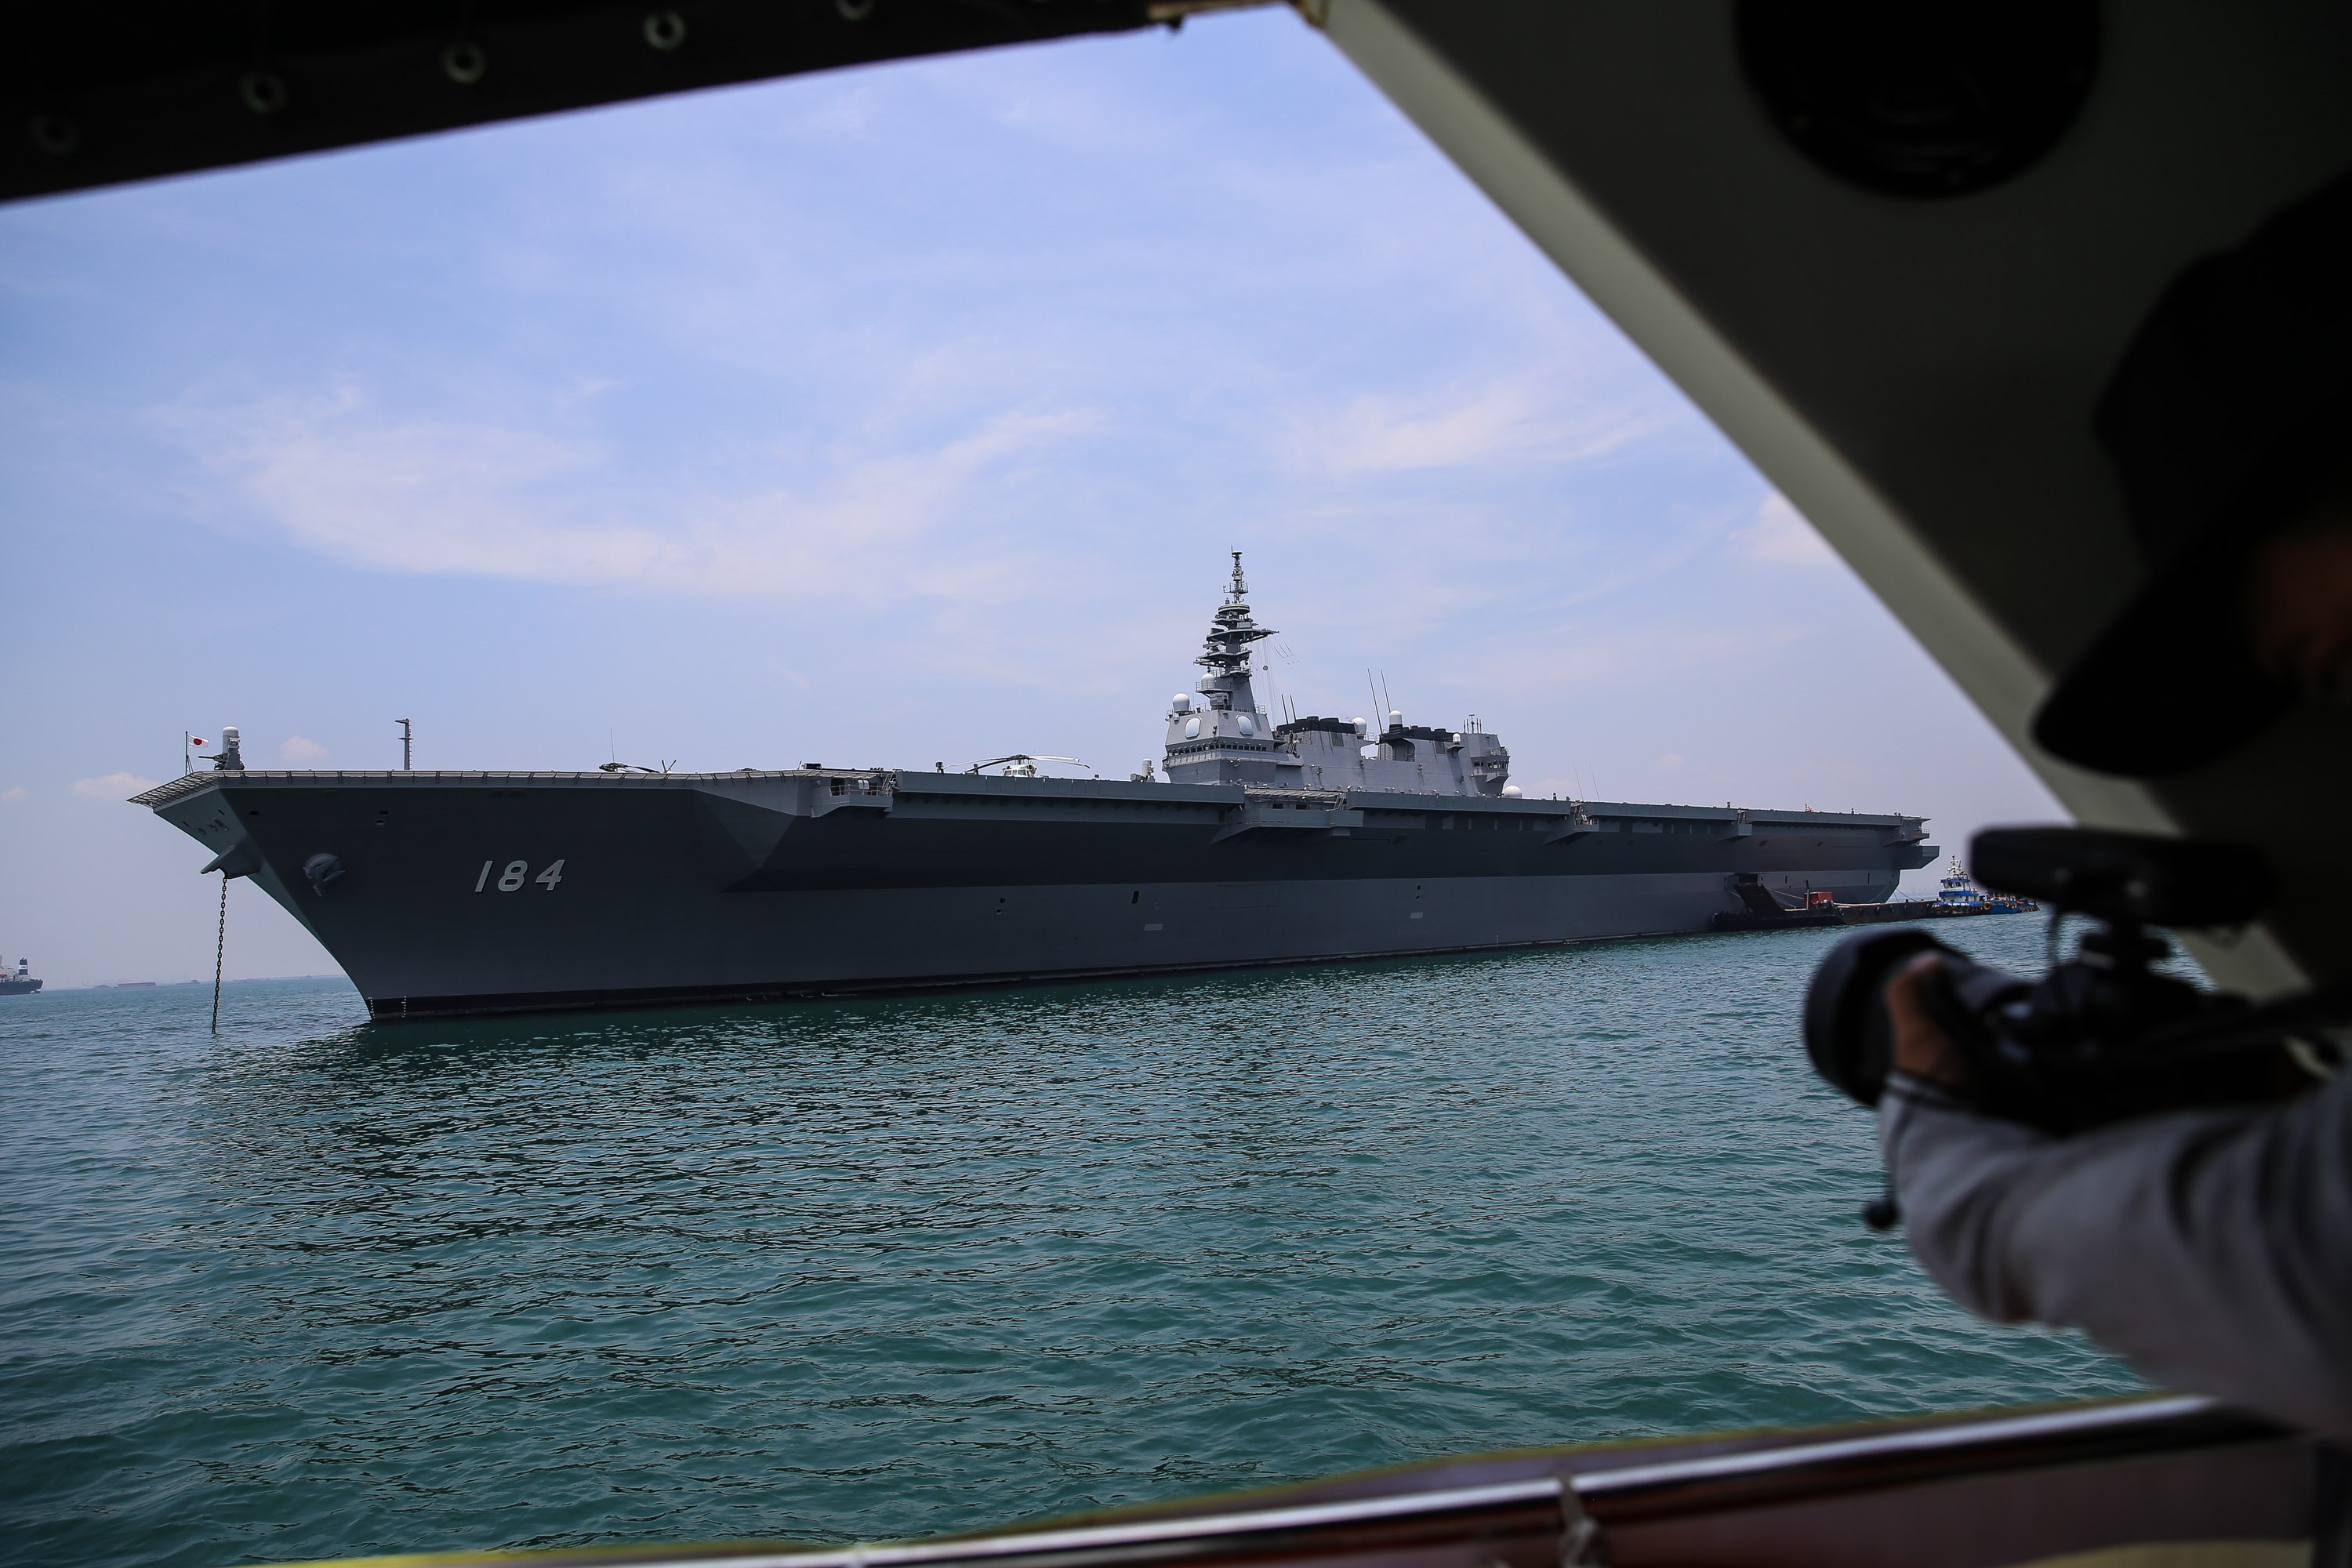 Ship JS KAGA DDH-184 in the Izumo class of the Japan Maritime Self-Defense Force (MSDF), as it arrives at Tanjung Priok port in Jakarta, Indonesia on Tuesday, September 18, 2018. The Japanese flotillas visit is Japans way to enhance its operational capability, promote cooperation, and facilitate interoperability with partner navies in South Asia and Southeast Asia. (Photo by Andrew Lotulung/NurPhoto via Getty Images)